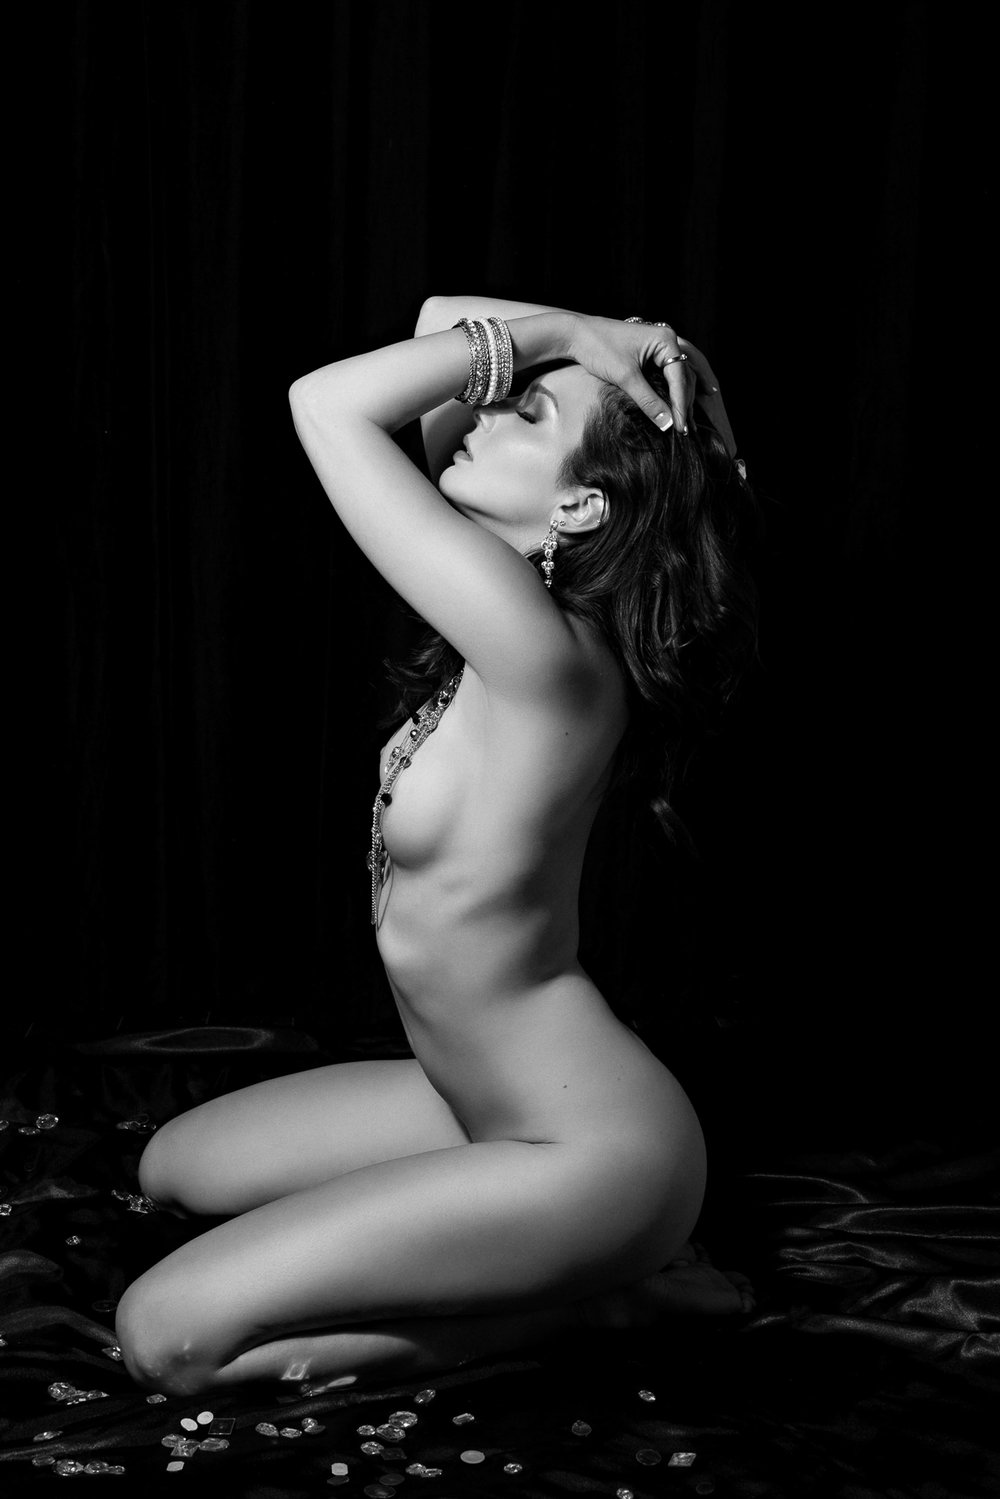 black and white photo of woman on knees art nude